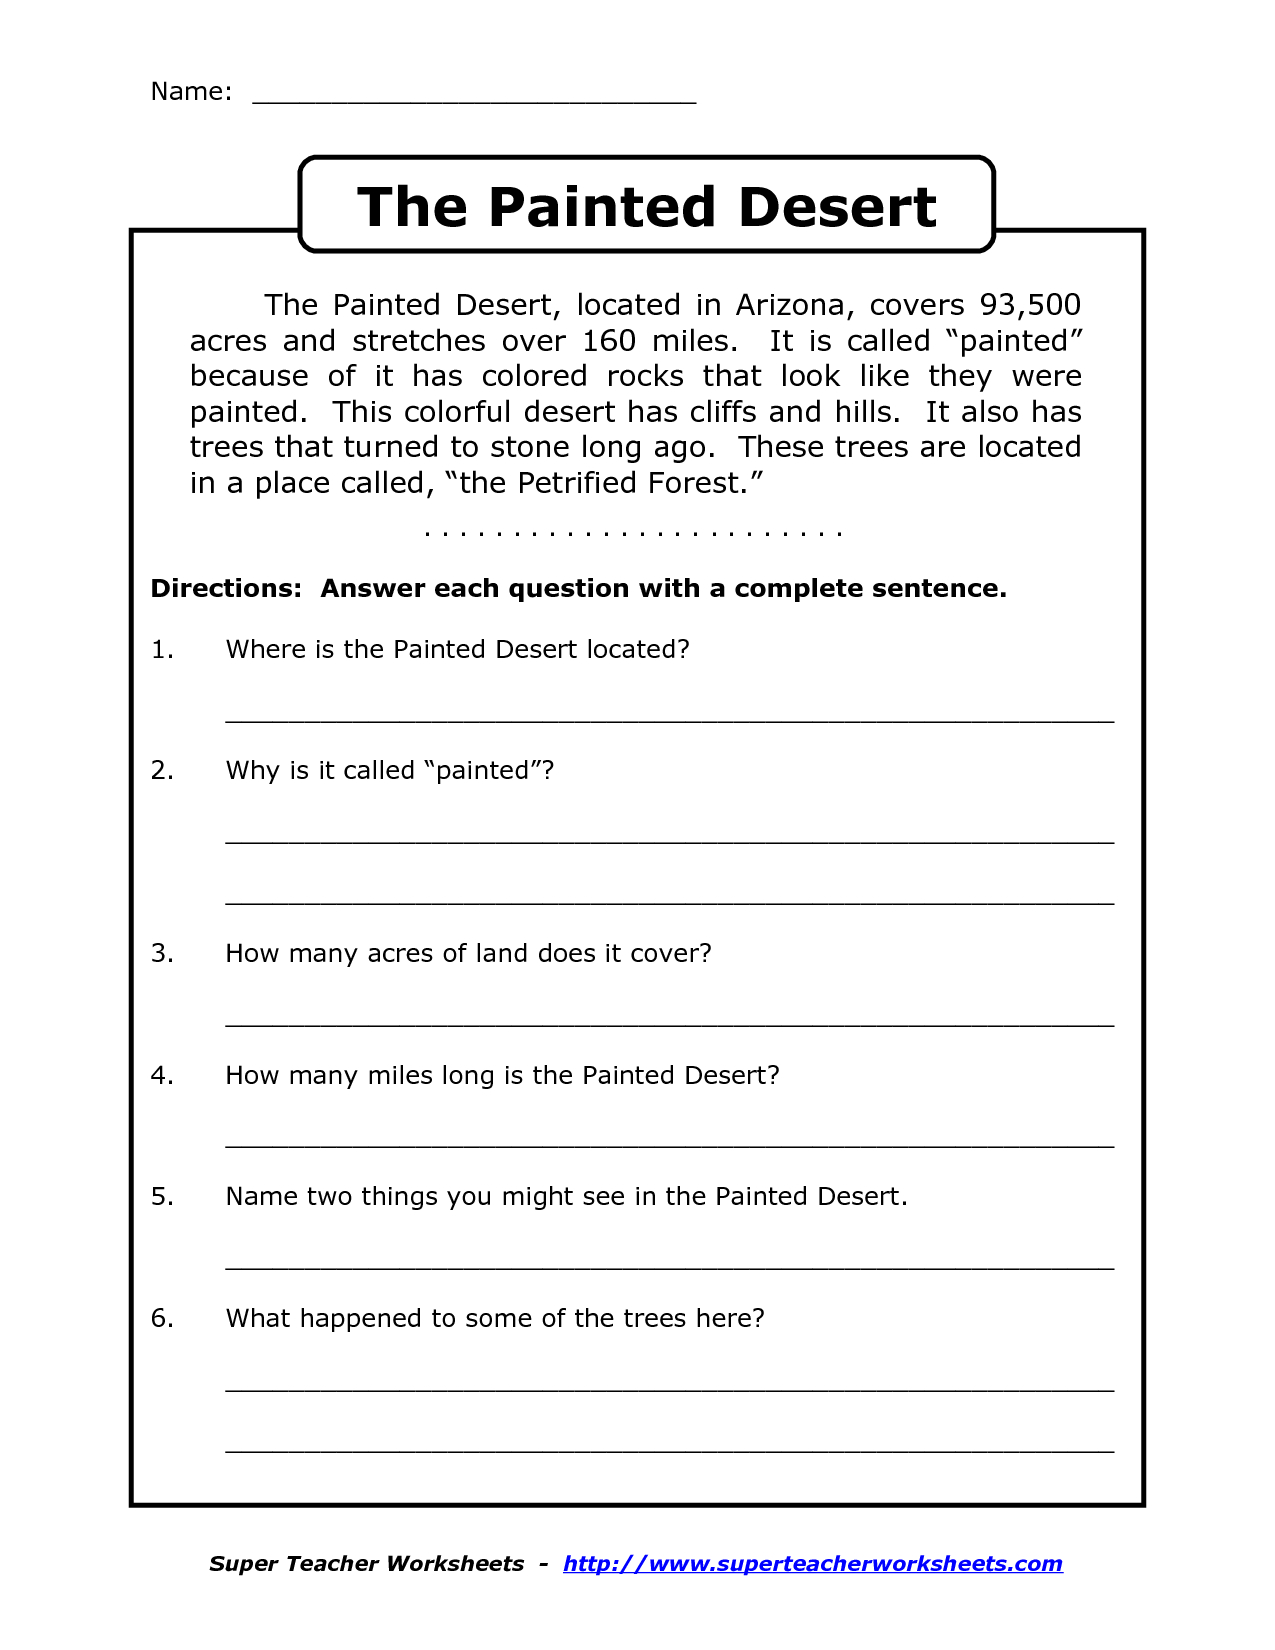 Reading Worksheets For 4Th Grade | Reading Comprehension Worksheets - Free Printable Reading Passages For 3Rd Grade